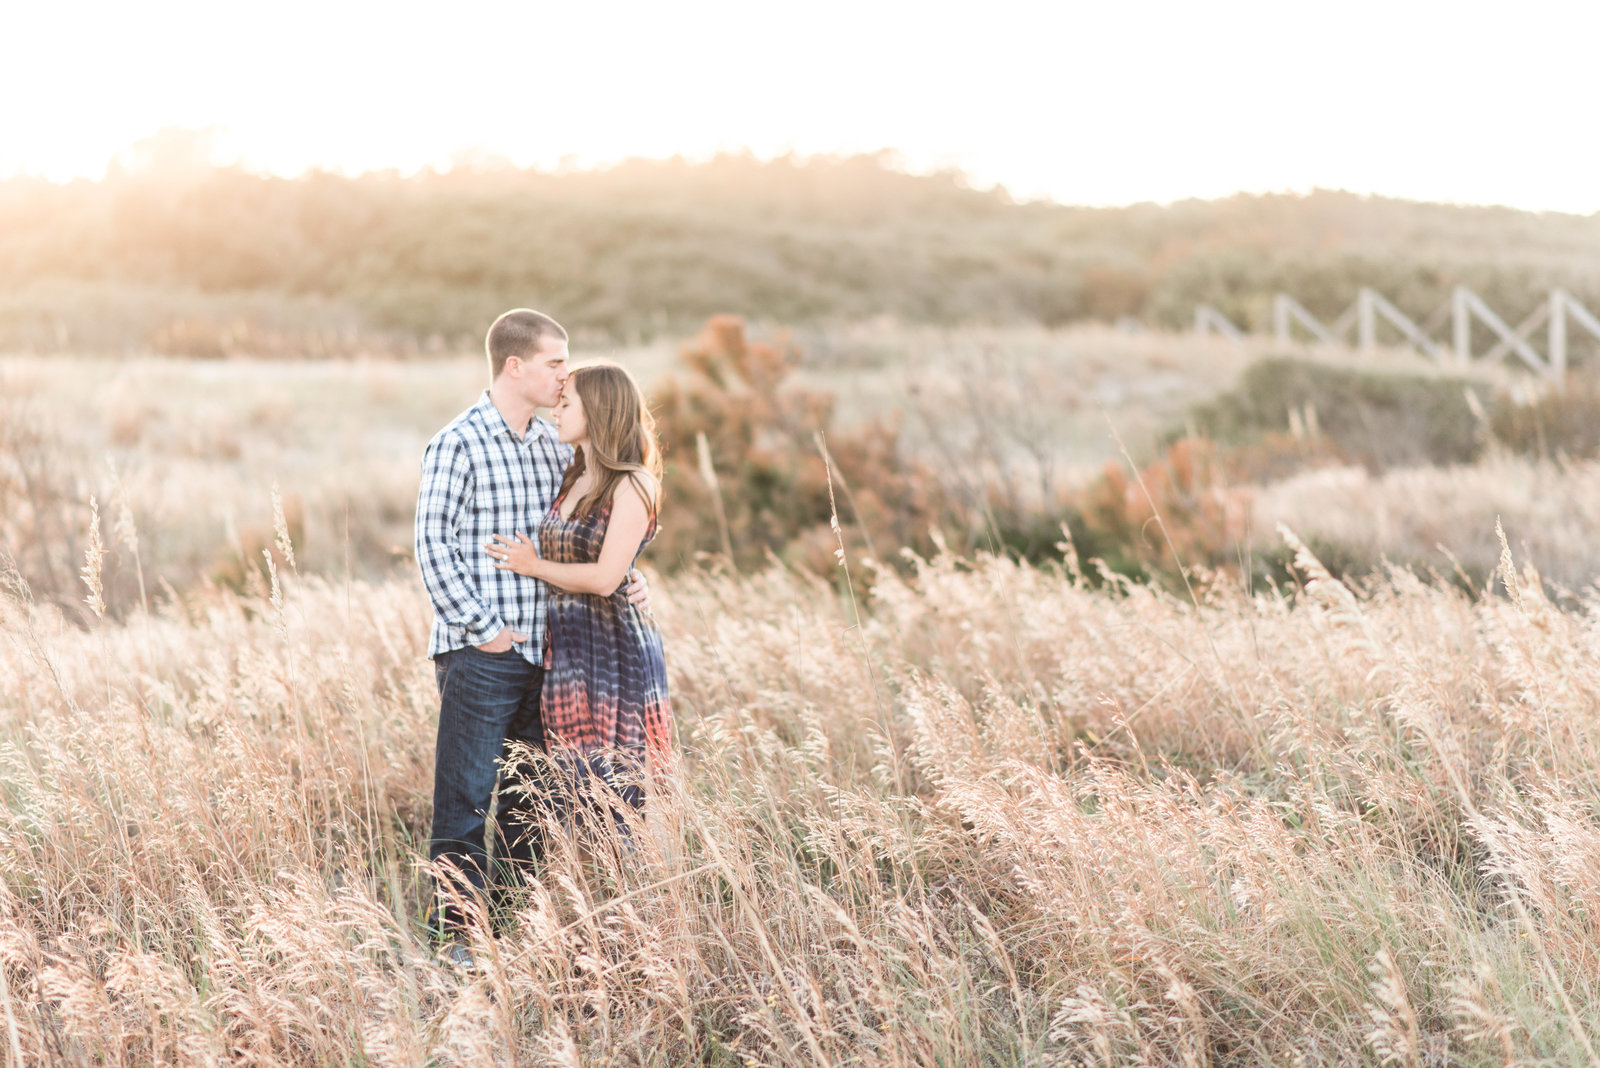 va-beach-89th-street-beach-engagement-session-photo467